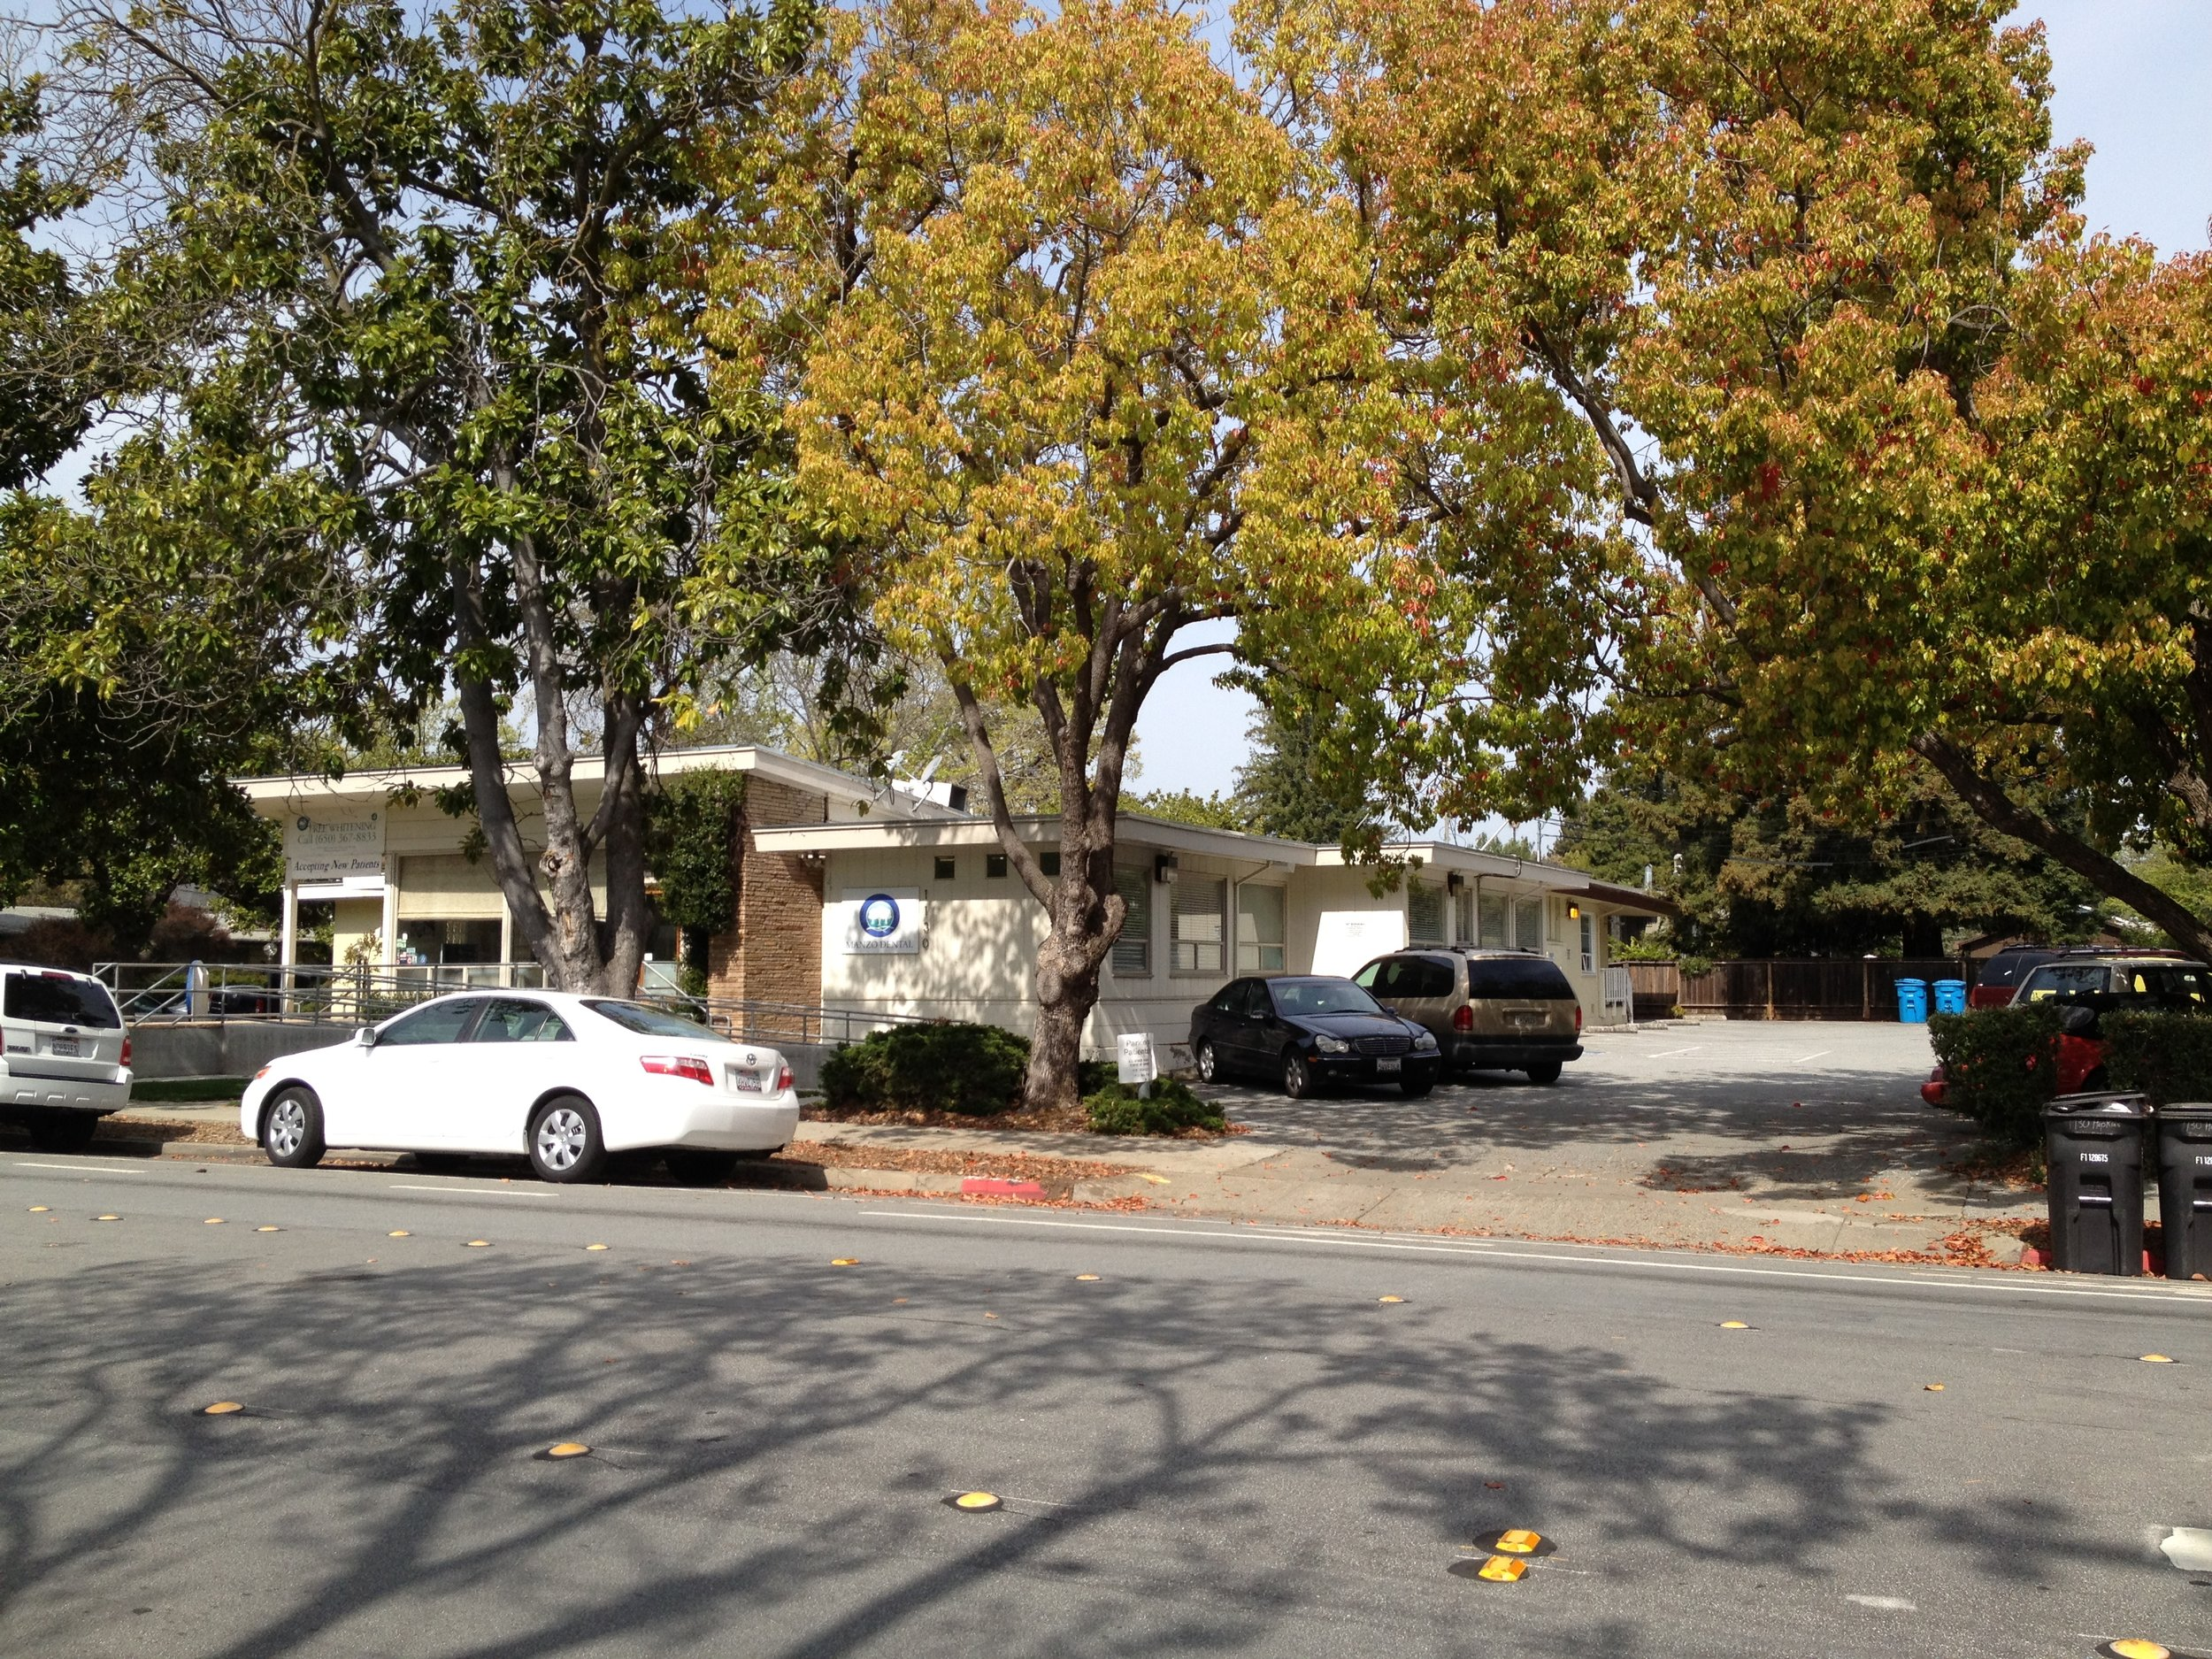 1130 Hopkins Avenue & 81-93 Birch Street, Redwood City, CA 94062 5,367 SF Two Building Medical Office Property $1,694,000